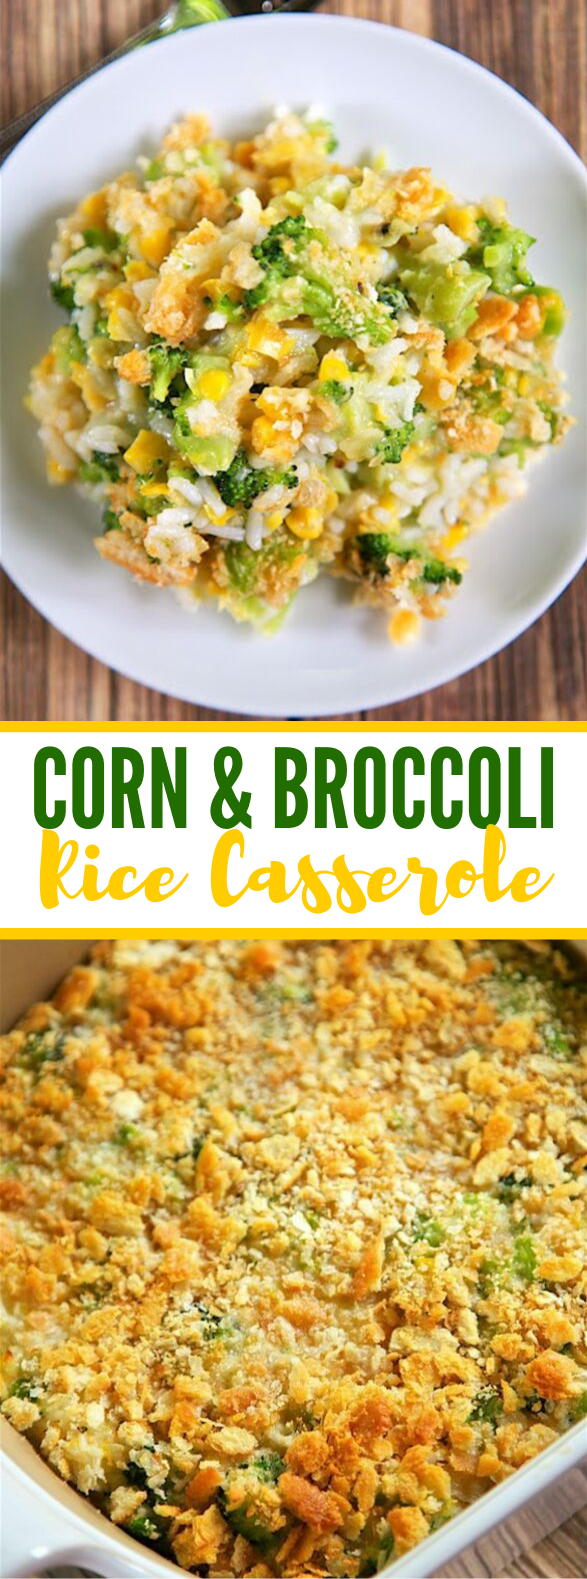 CORN AND BROCCOLI RICE CASSEROLE #vegetarian #easyrecipes